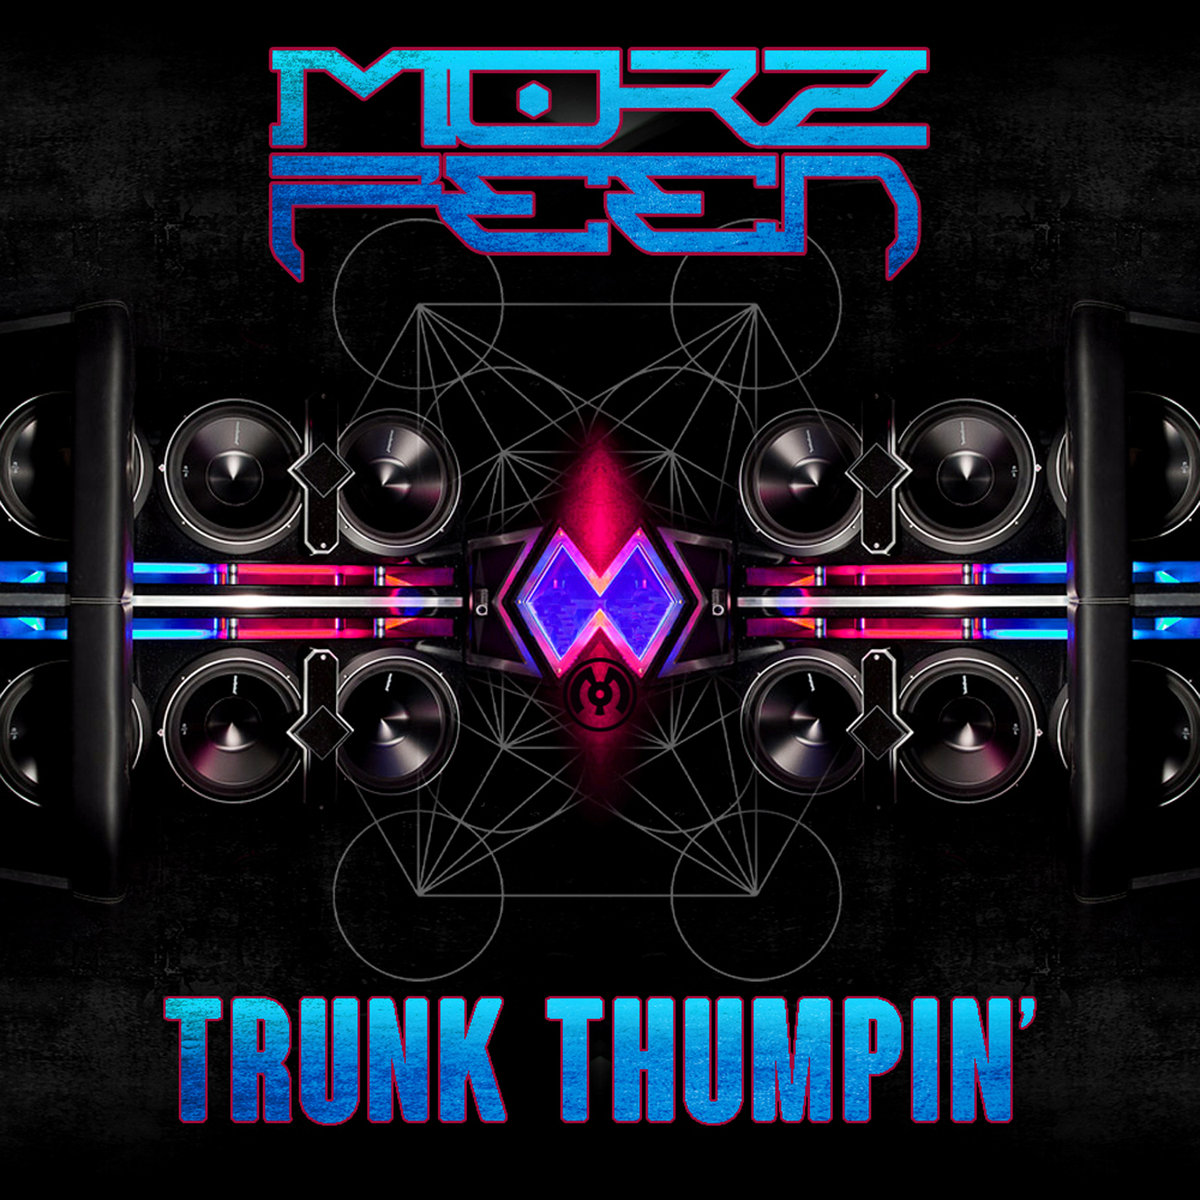 MorzFeen - TRON @ 'Trunk Thumpin'' album (electronic, dubstep)